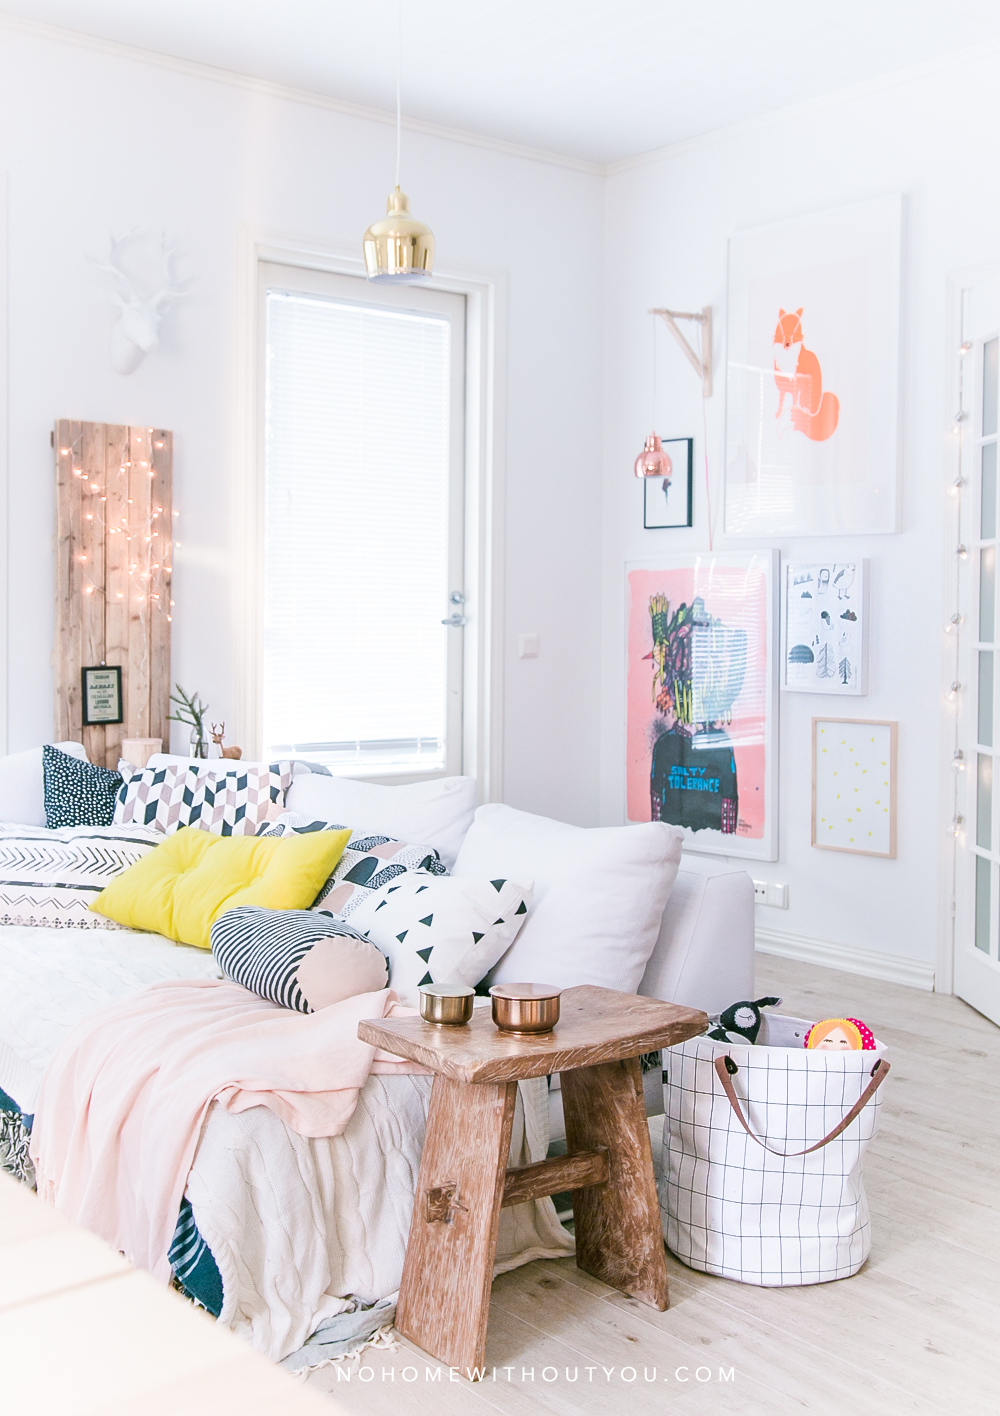 No Home Without You - Colorful living room (1 of 21)